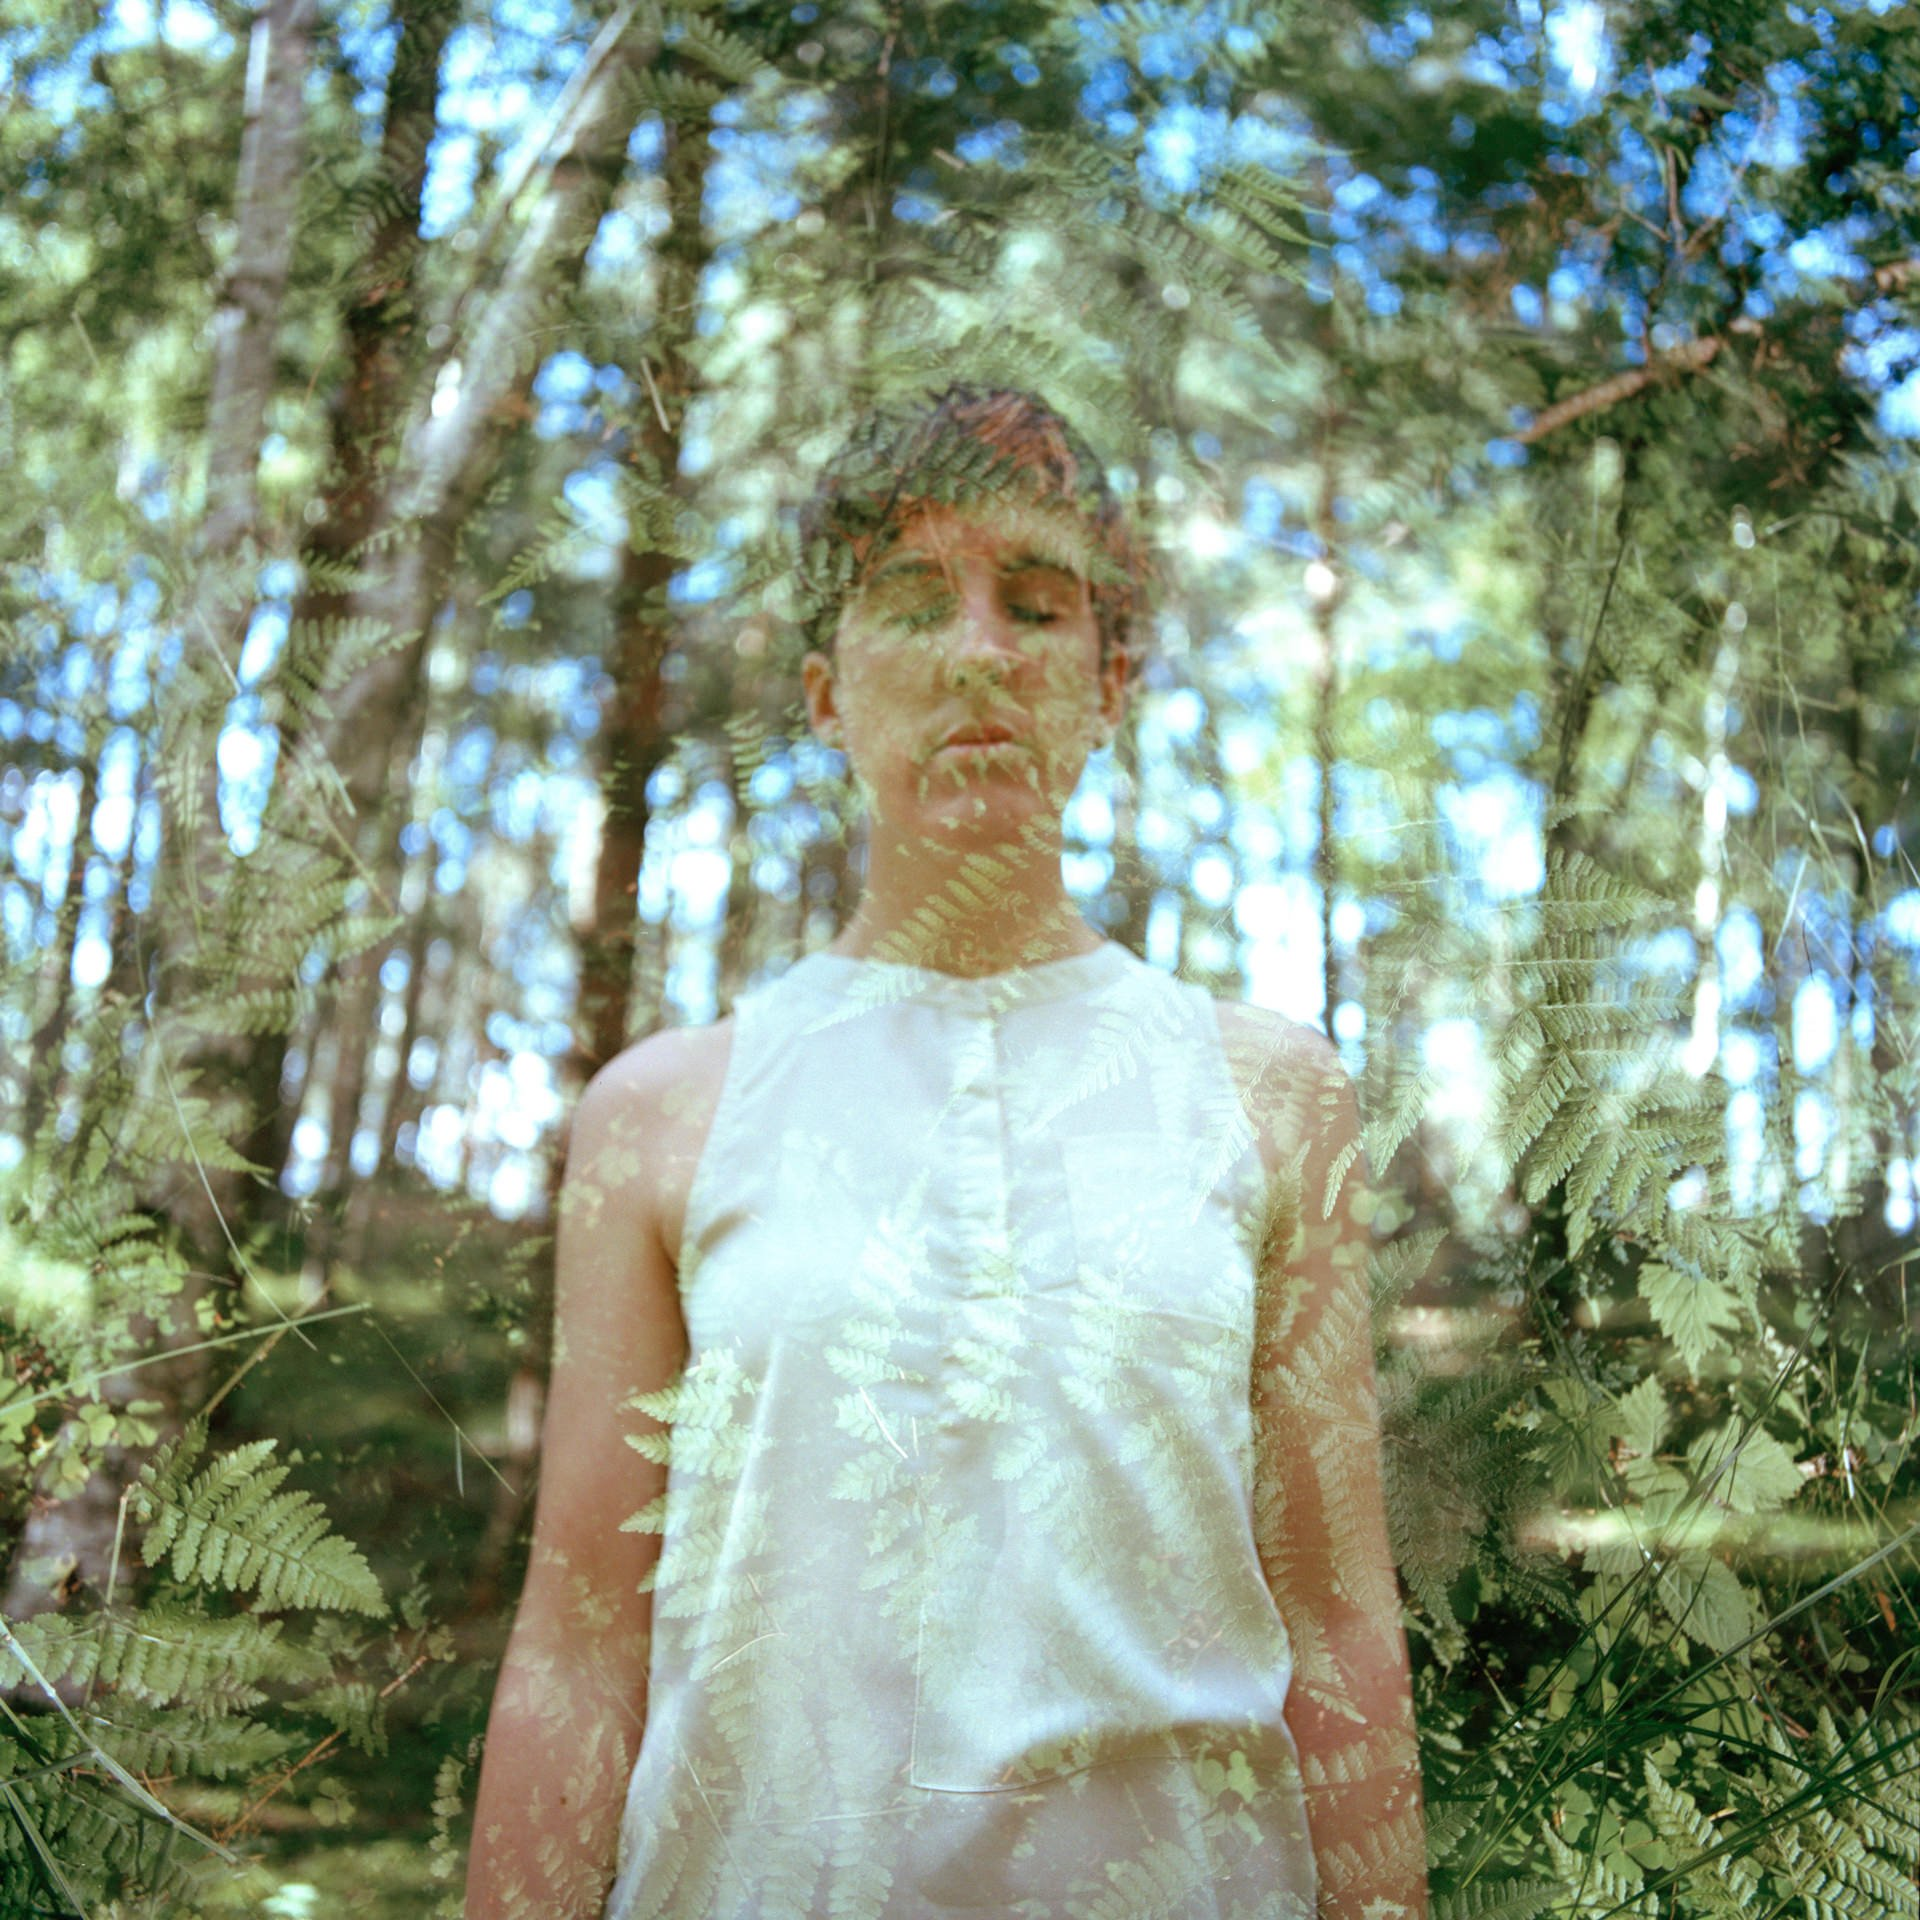 Hannah Laycock double exposure self-portrait with fern leaves taken in Culbin forest, Scotland, wearing a cream, sleeveless top